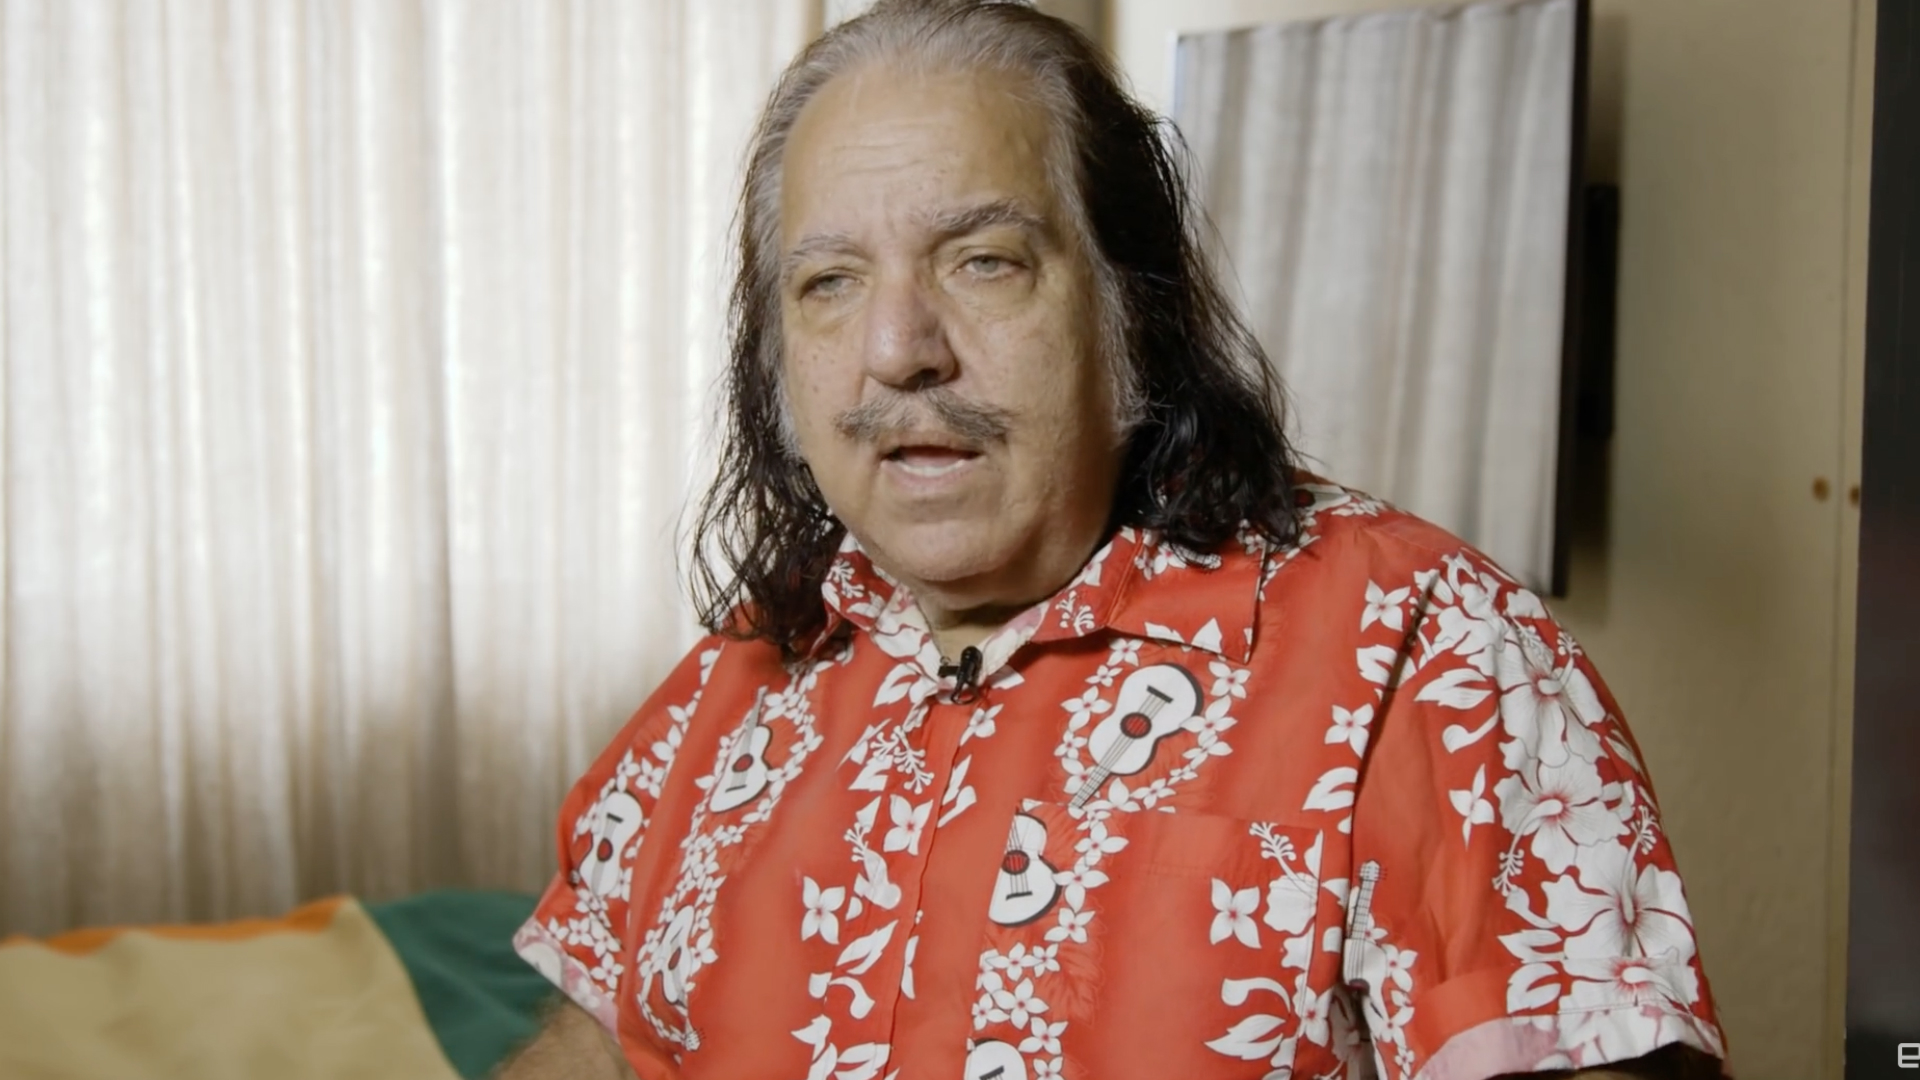 porn legend Ron Jeremy